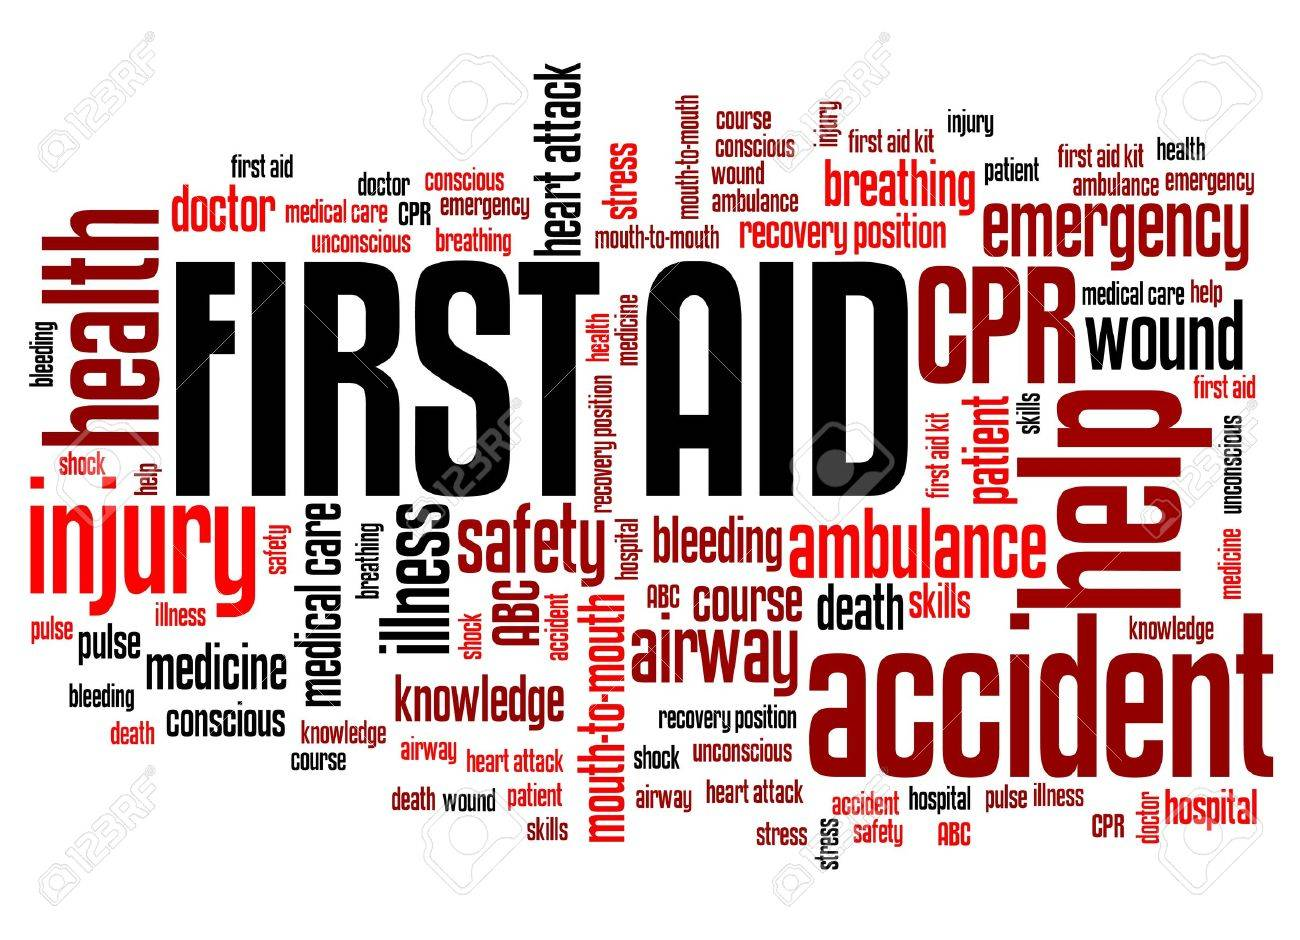 first aid health concepts word cloud illustration word collage